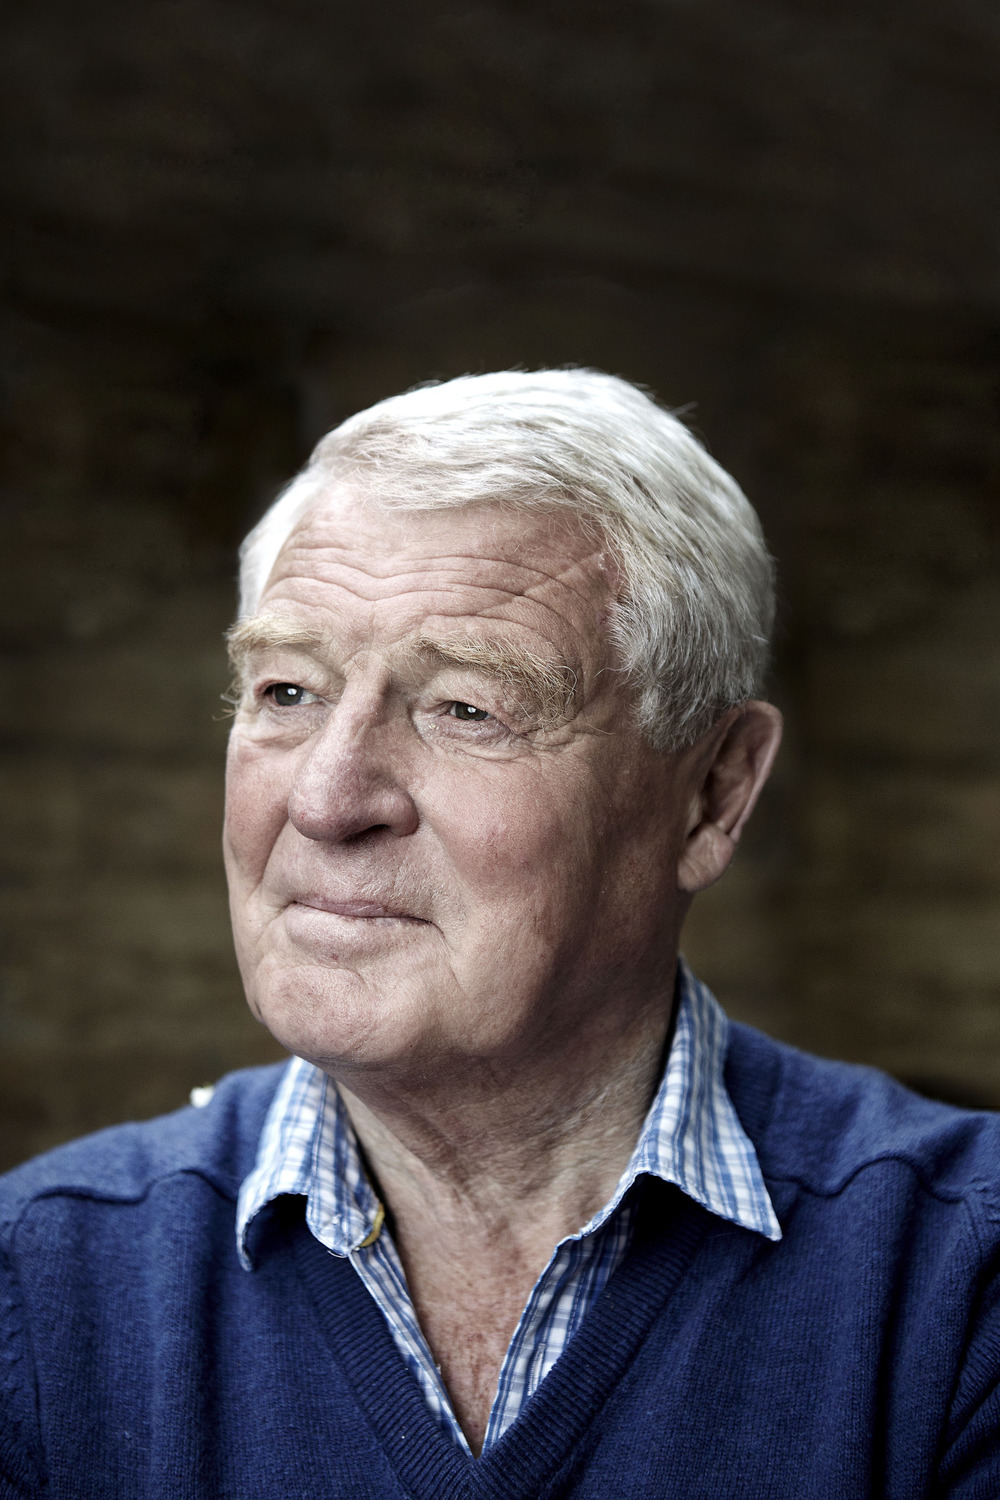 oliveredwardsphotography :     Paddy Ashdown for BBC History     reblog - Paddy Ashdown for BBC History